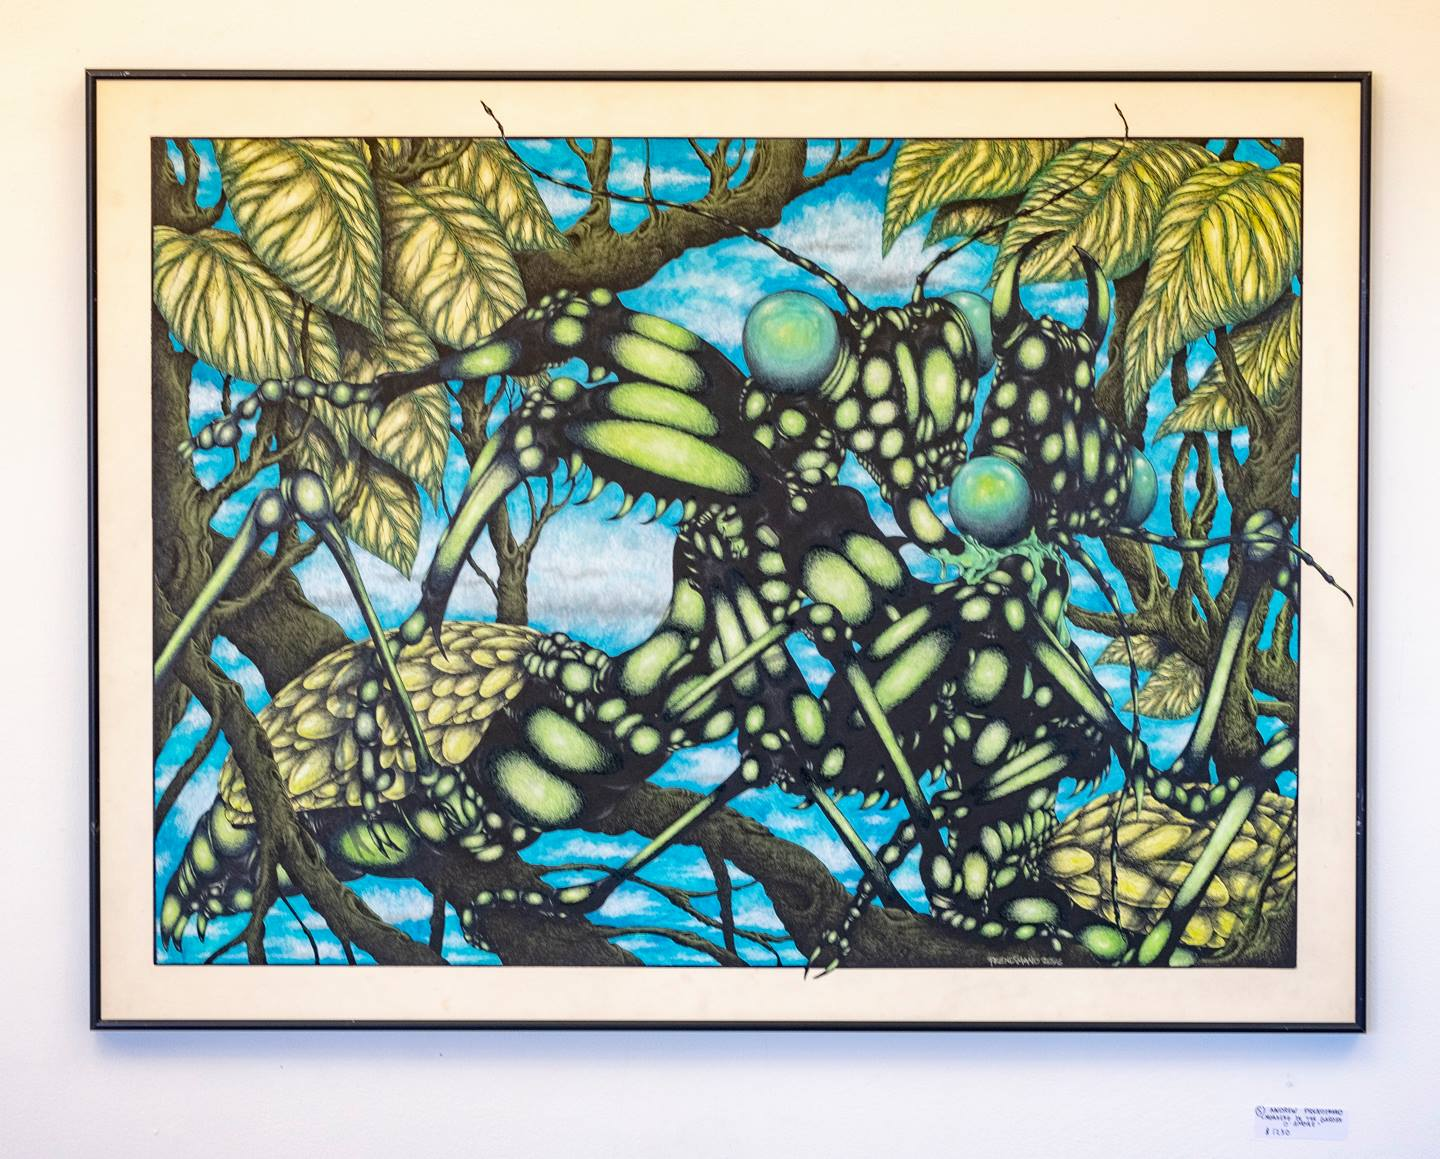 """First Place (tie)  Andrew Prendimano - """"Morning in the garden d'amore"""" For Sale: $1,250"""